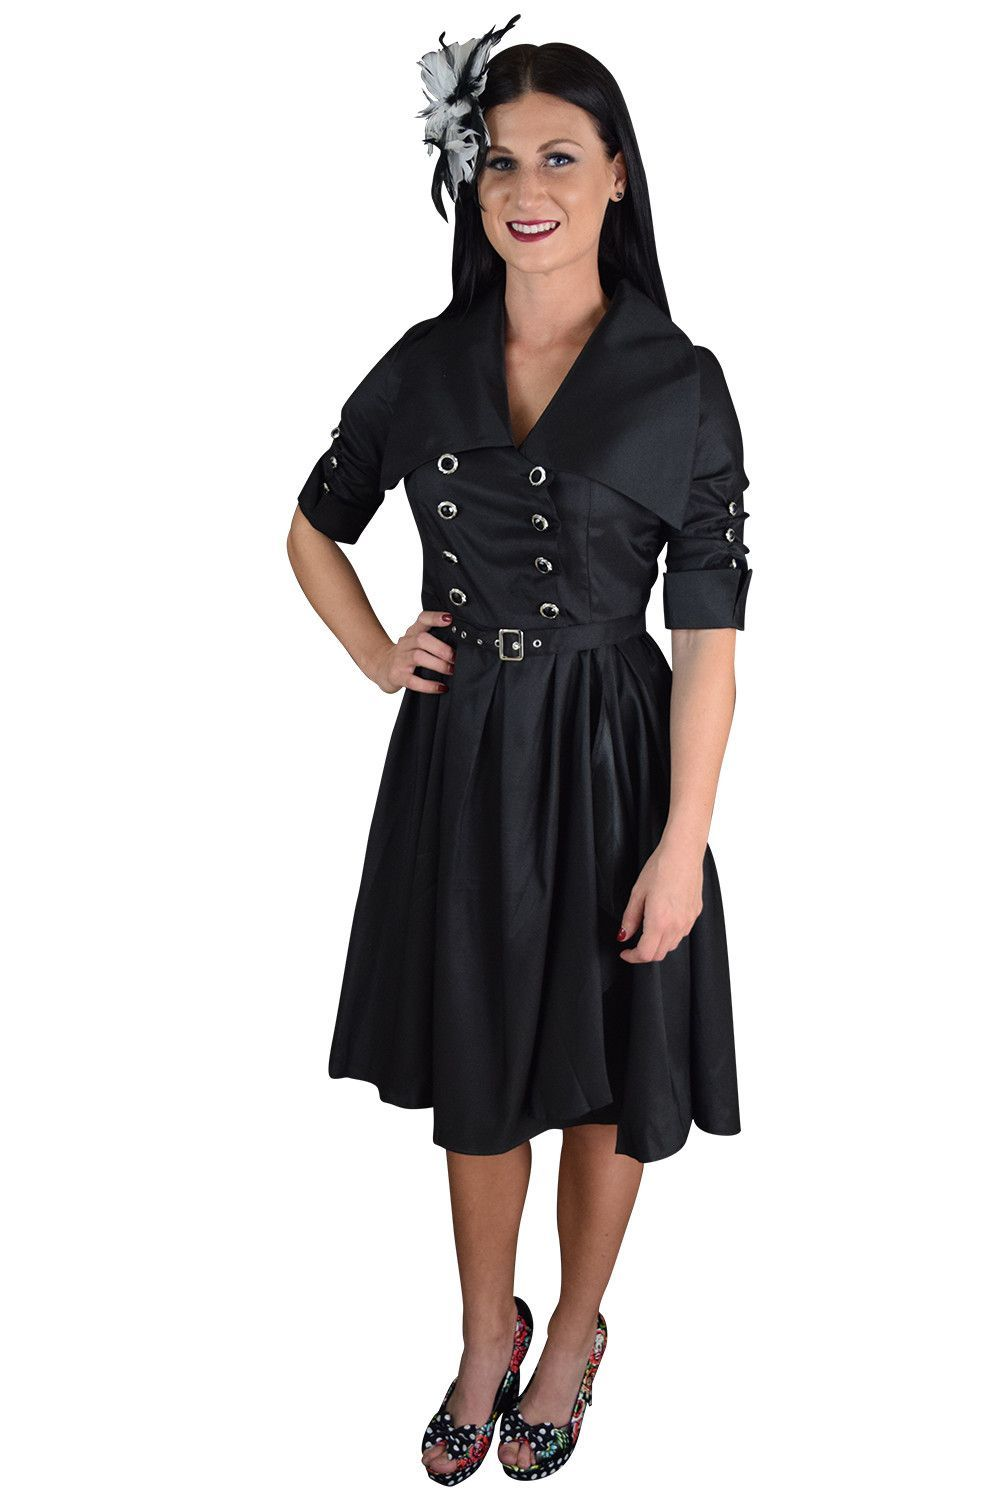 c7e785ebcdbb 60's Vintage Style Rockabilly Gothic Steampunk Black Belted Military Swing  Dress